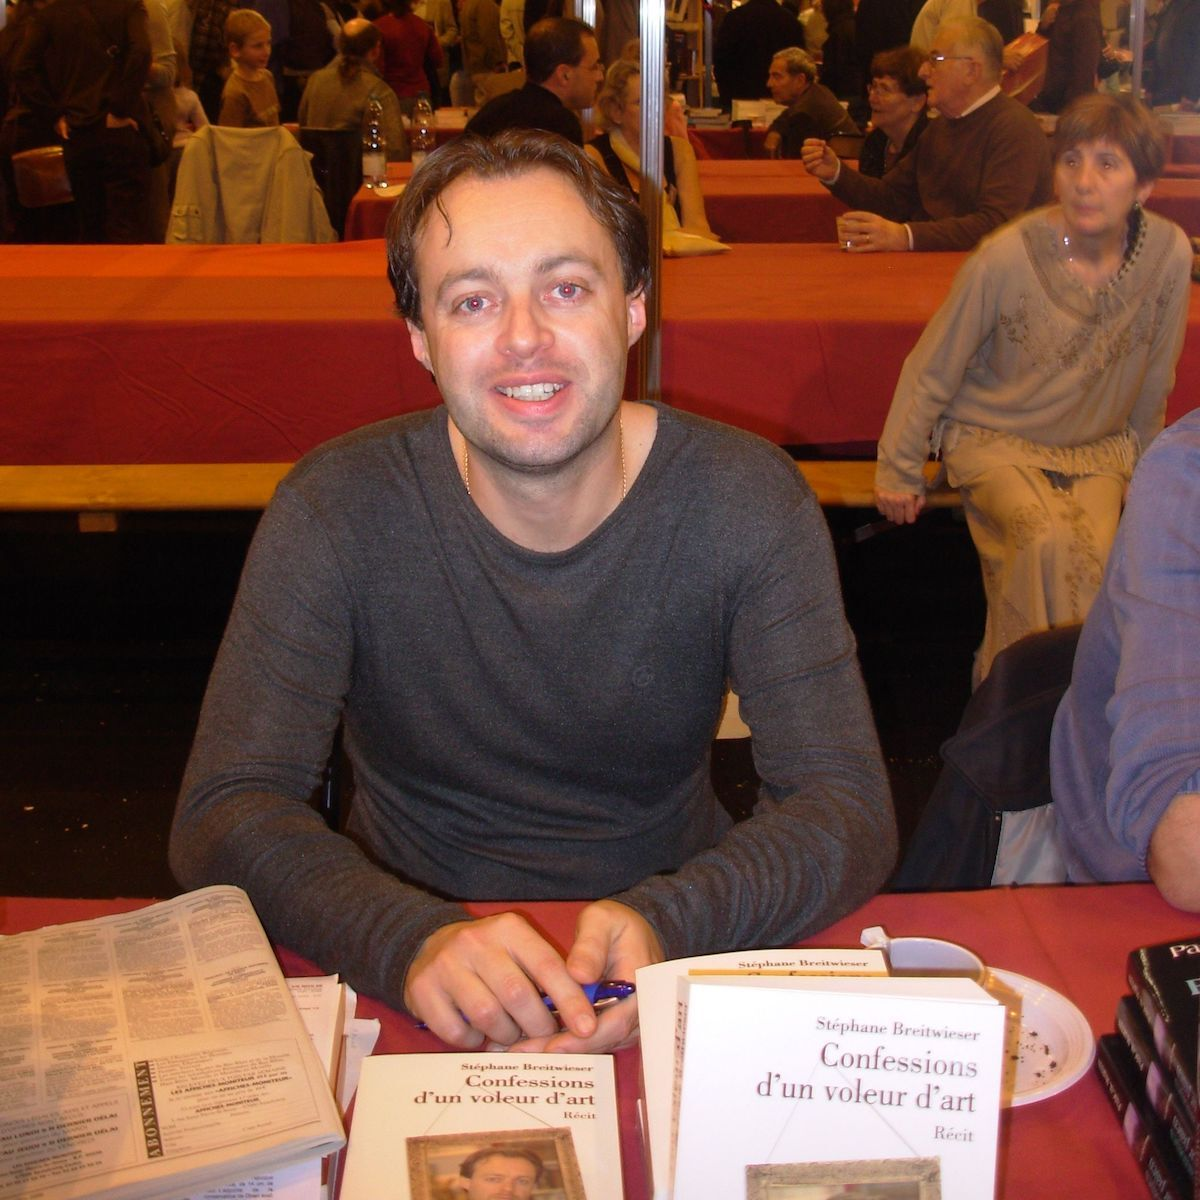 Stéphane Breitwieser at a book fair in 2006. Photo by Jef-Infojef, via Wikimedia Commons.